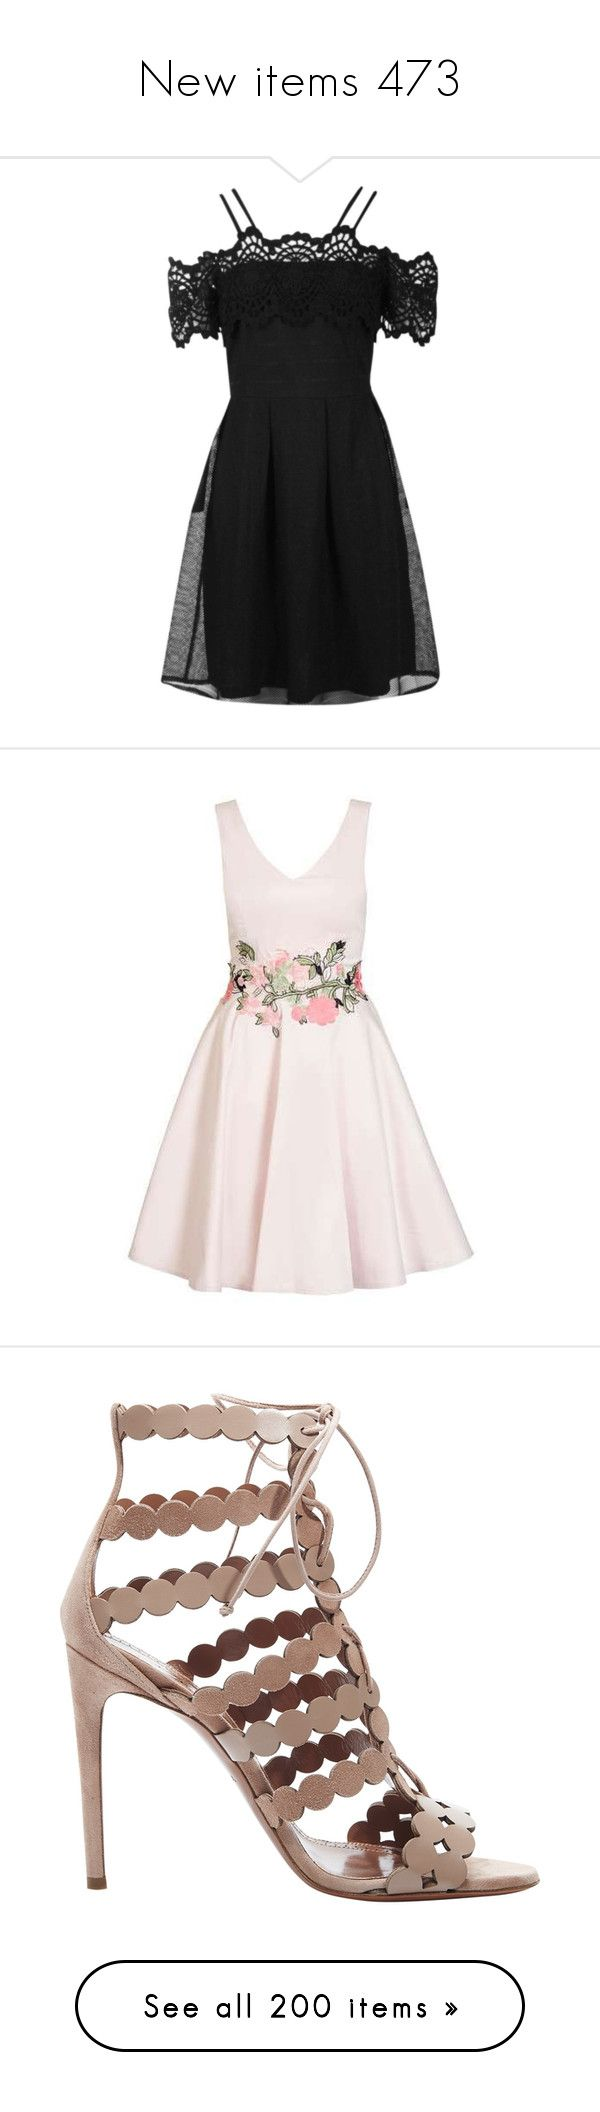 """New items 473"" by cavallaro ❤ liked on Polyvore featuring dresses, white cami, white prom dresses, white skater dress, white cocktail dress, maxi dresses, flower print skater dress, floral print skater dress, floral printed dress and floral skater dress"